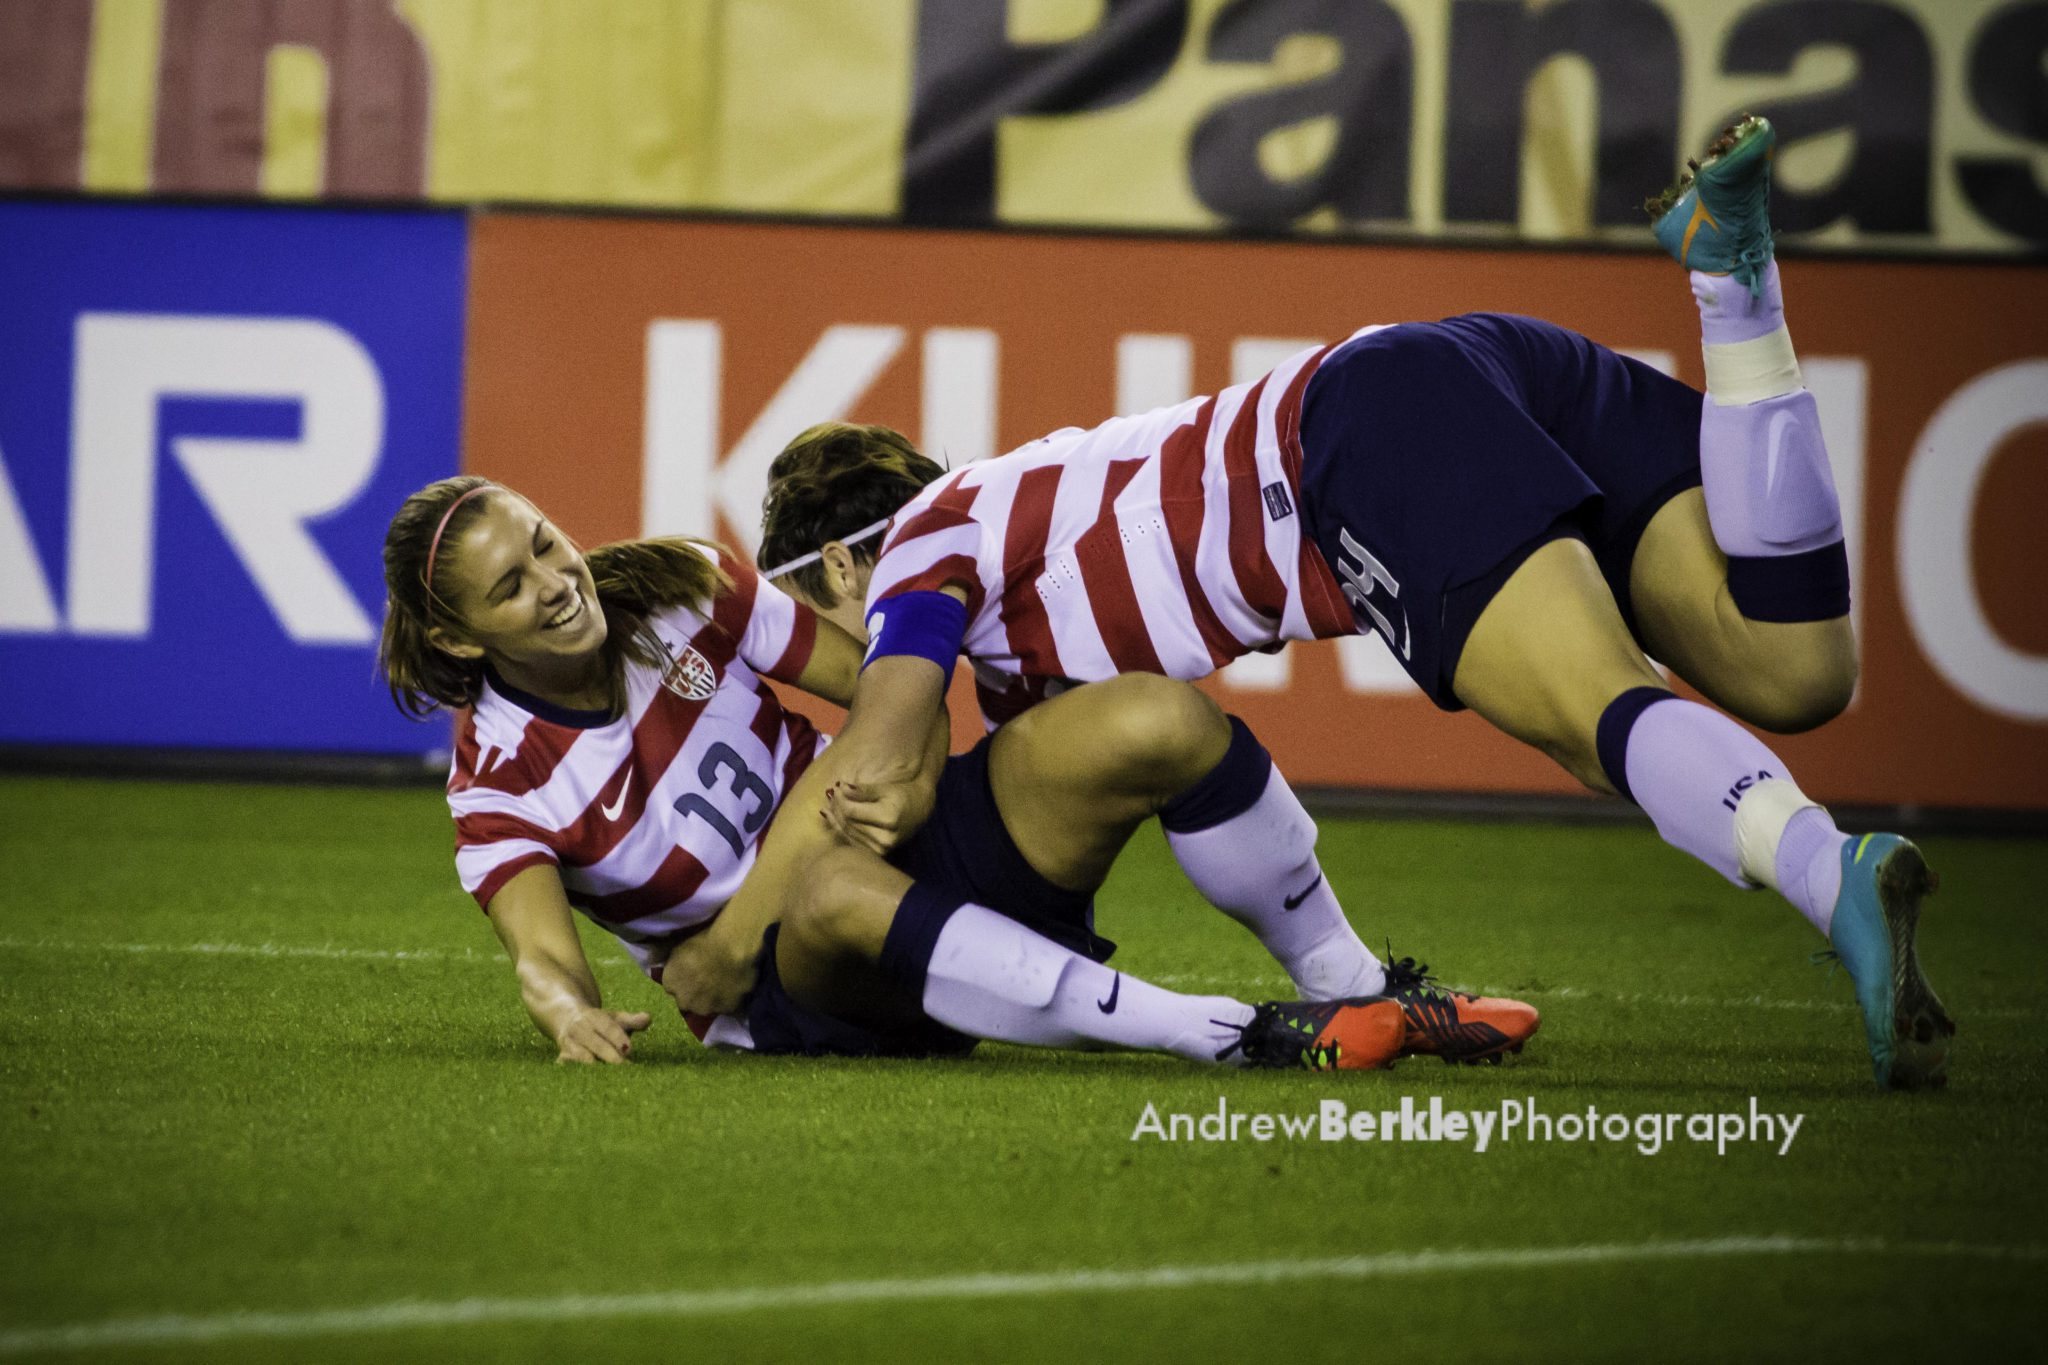 Alex Morgan (right) and Abby Wambach celebrate Morgan's 1st minute goal on Saturday. (Photo copyright Andrew Berkley for EqualizerSoccer.com)